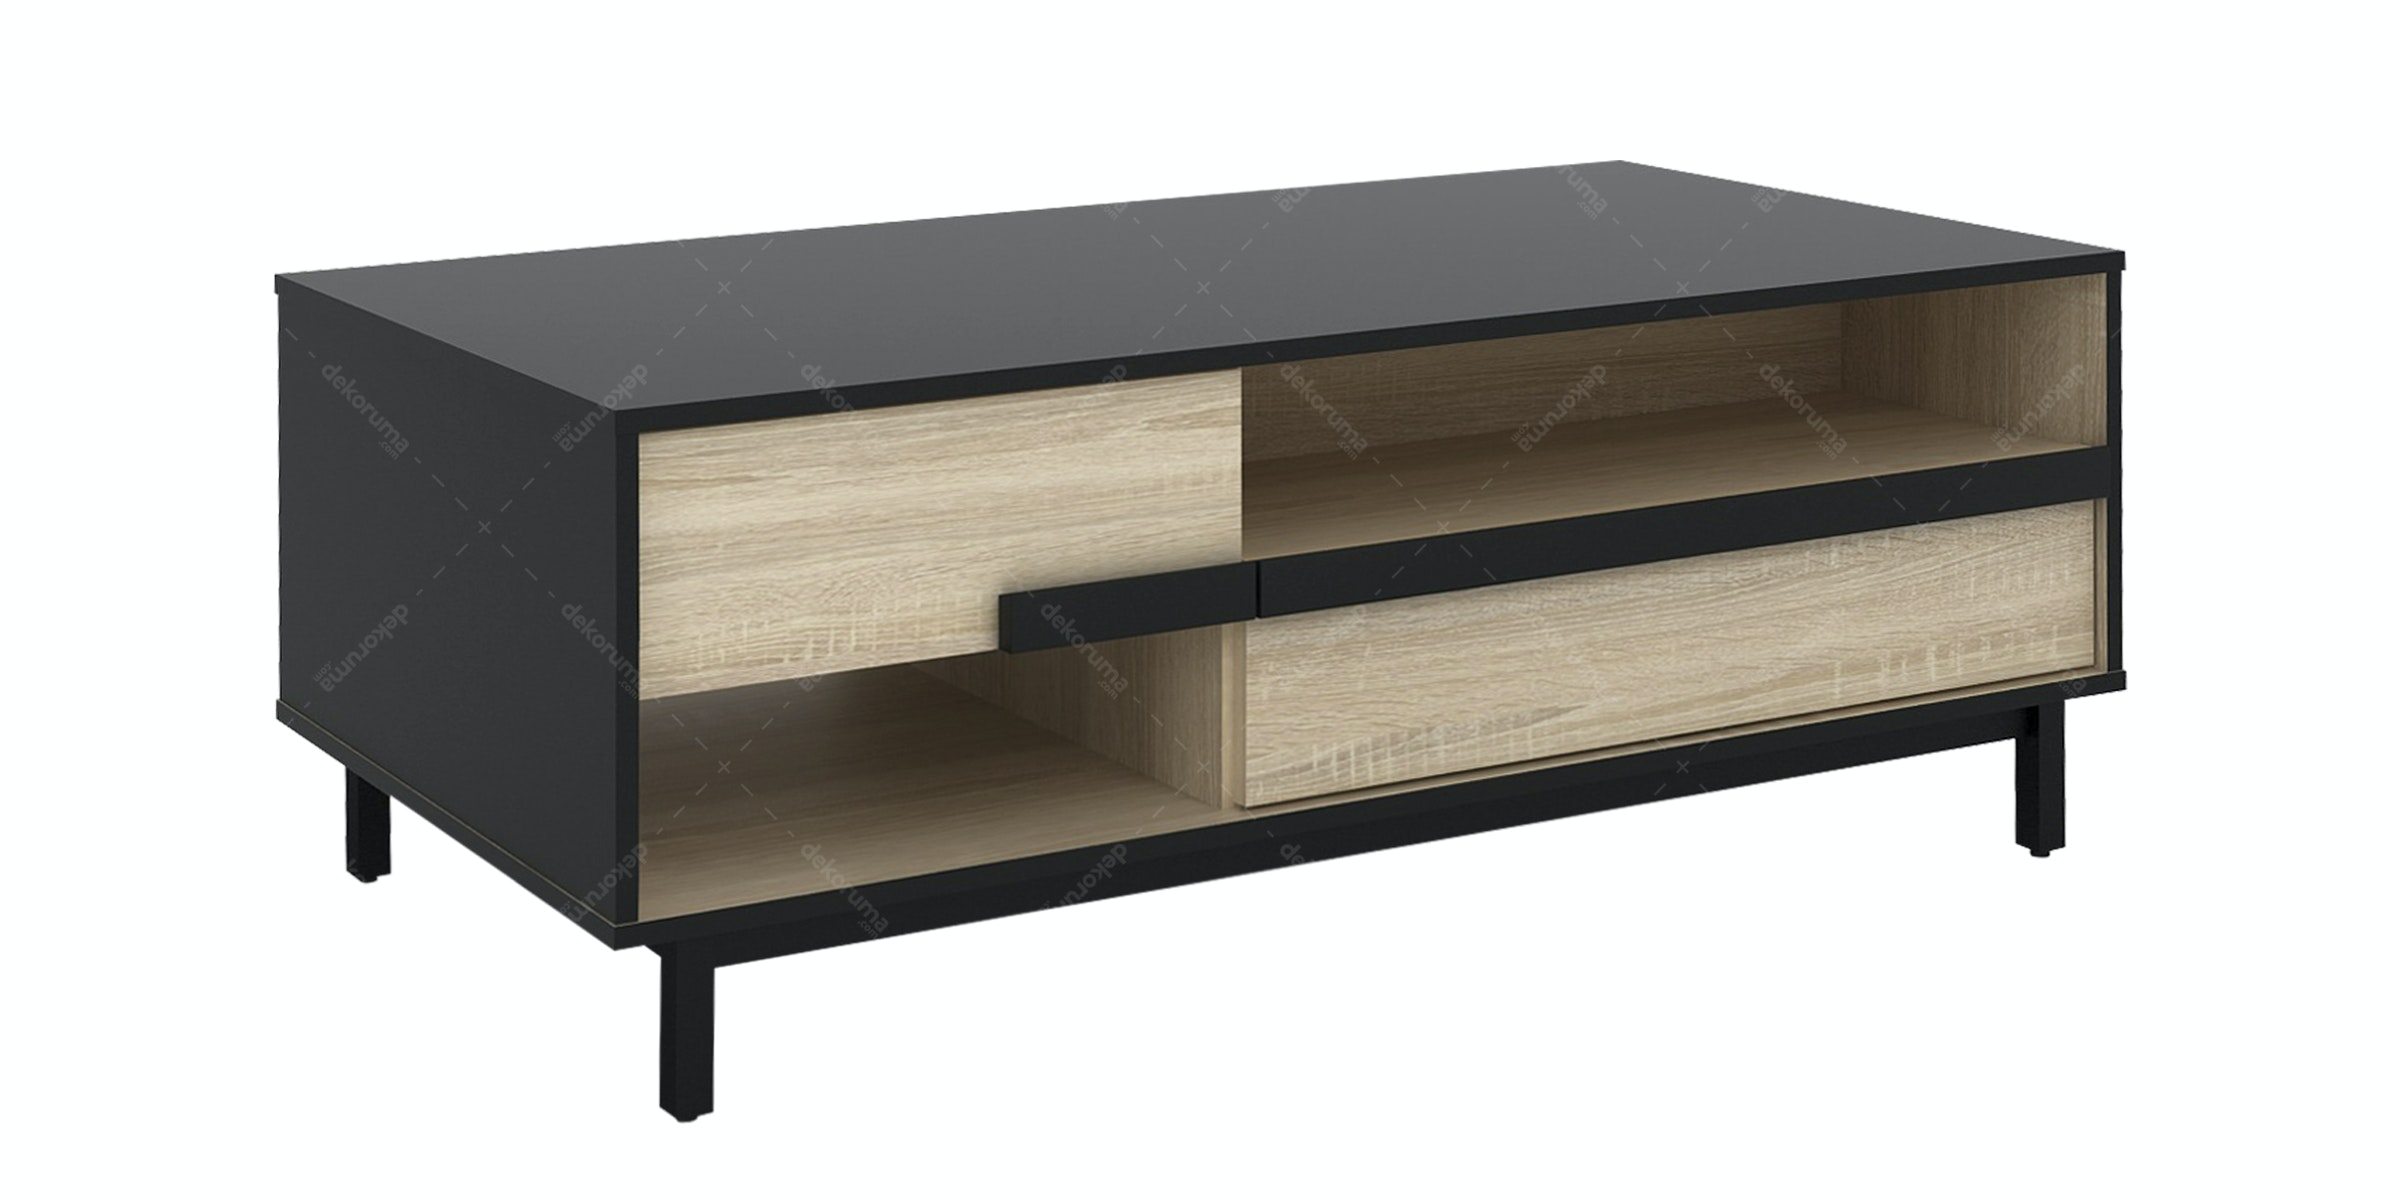 JYSK Coffee Table Bakke 120X60X44Cm Black Sonoma Oak